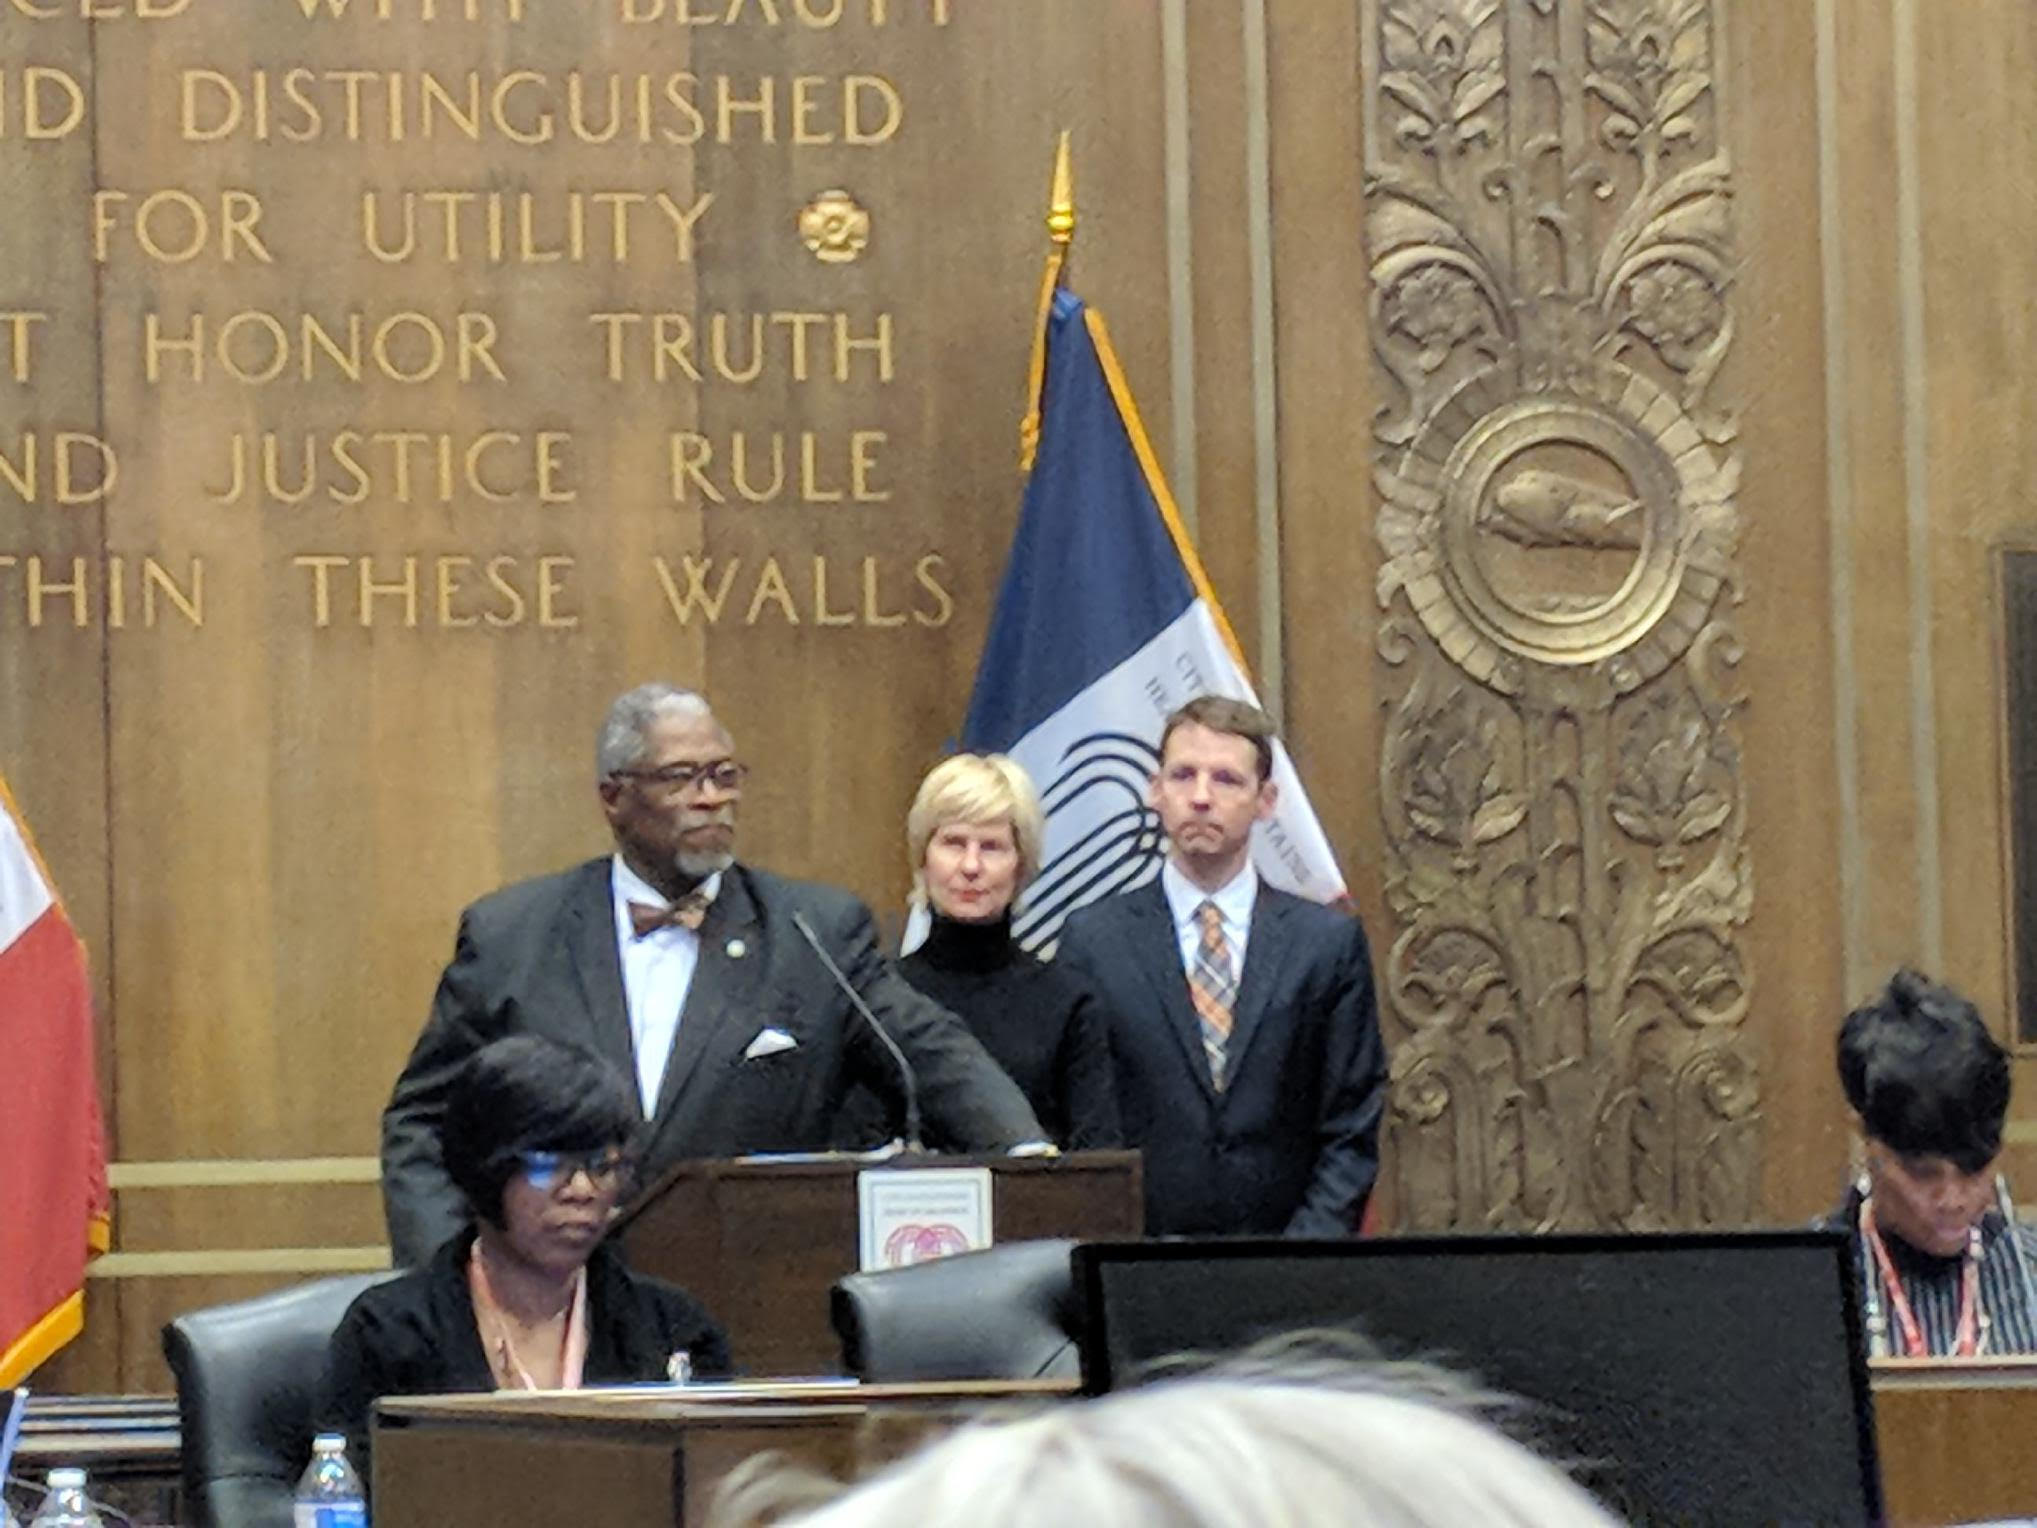 City of Kansas City, Missouri Mayor, Sly James, Women's Foundation President & CEO, Wendy Doyle and Vice President of Research & Policy And General Counsel,Kendall Seal